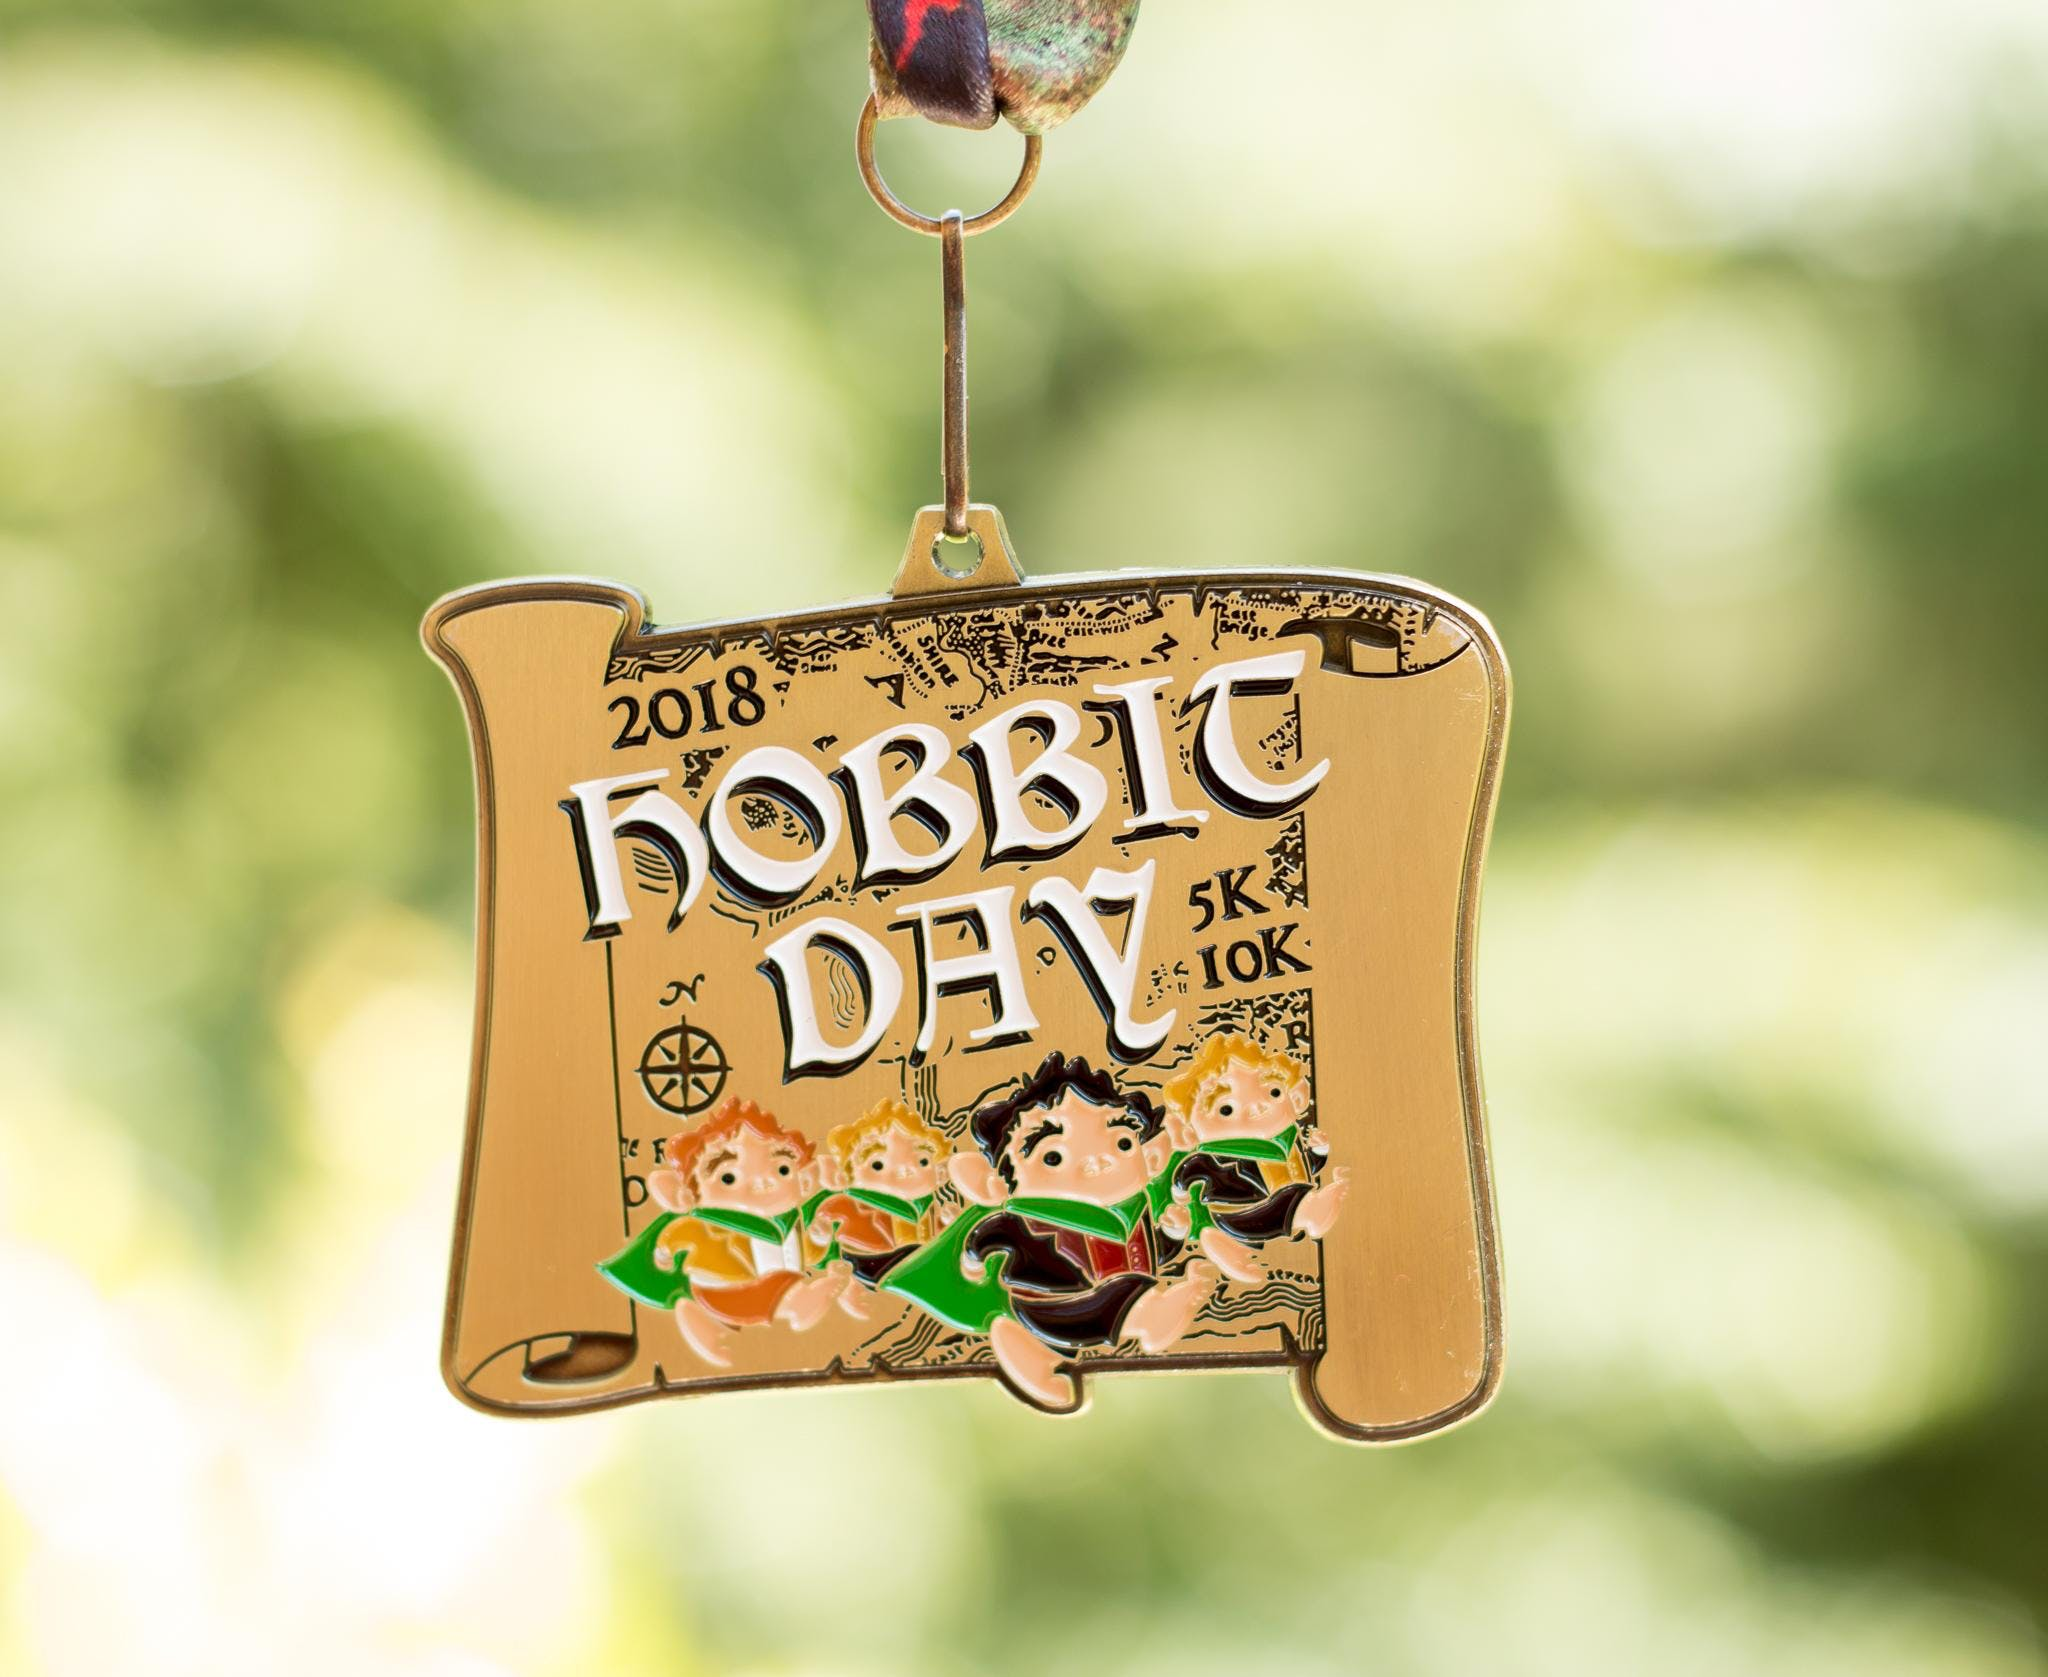 Hobbit Day 5K & 10K – Journey to Middle Earth -Philadelphia at ...